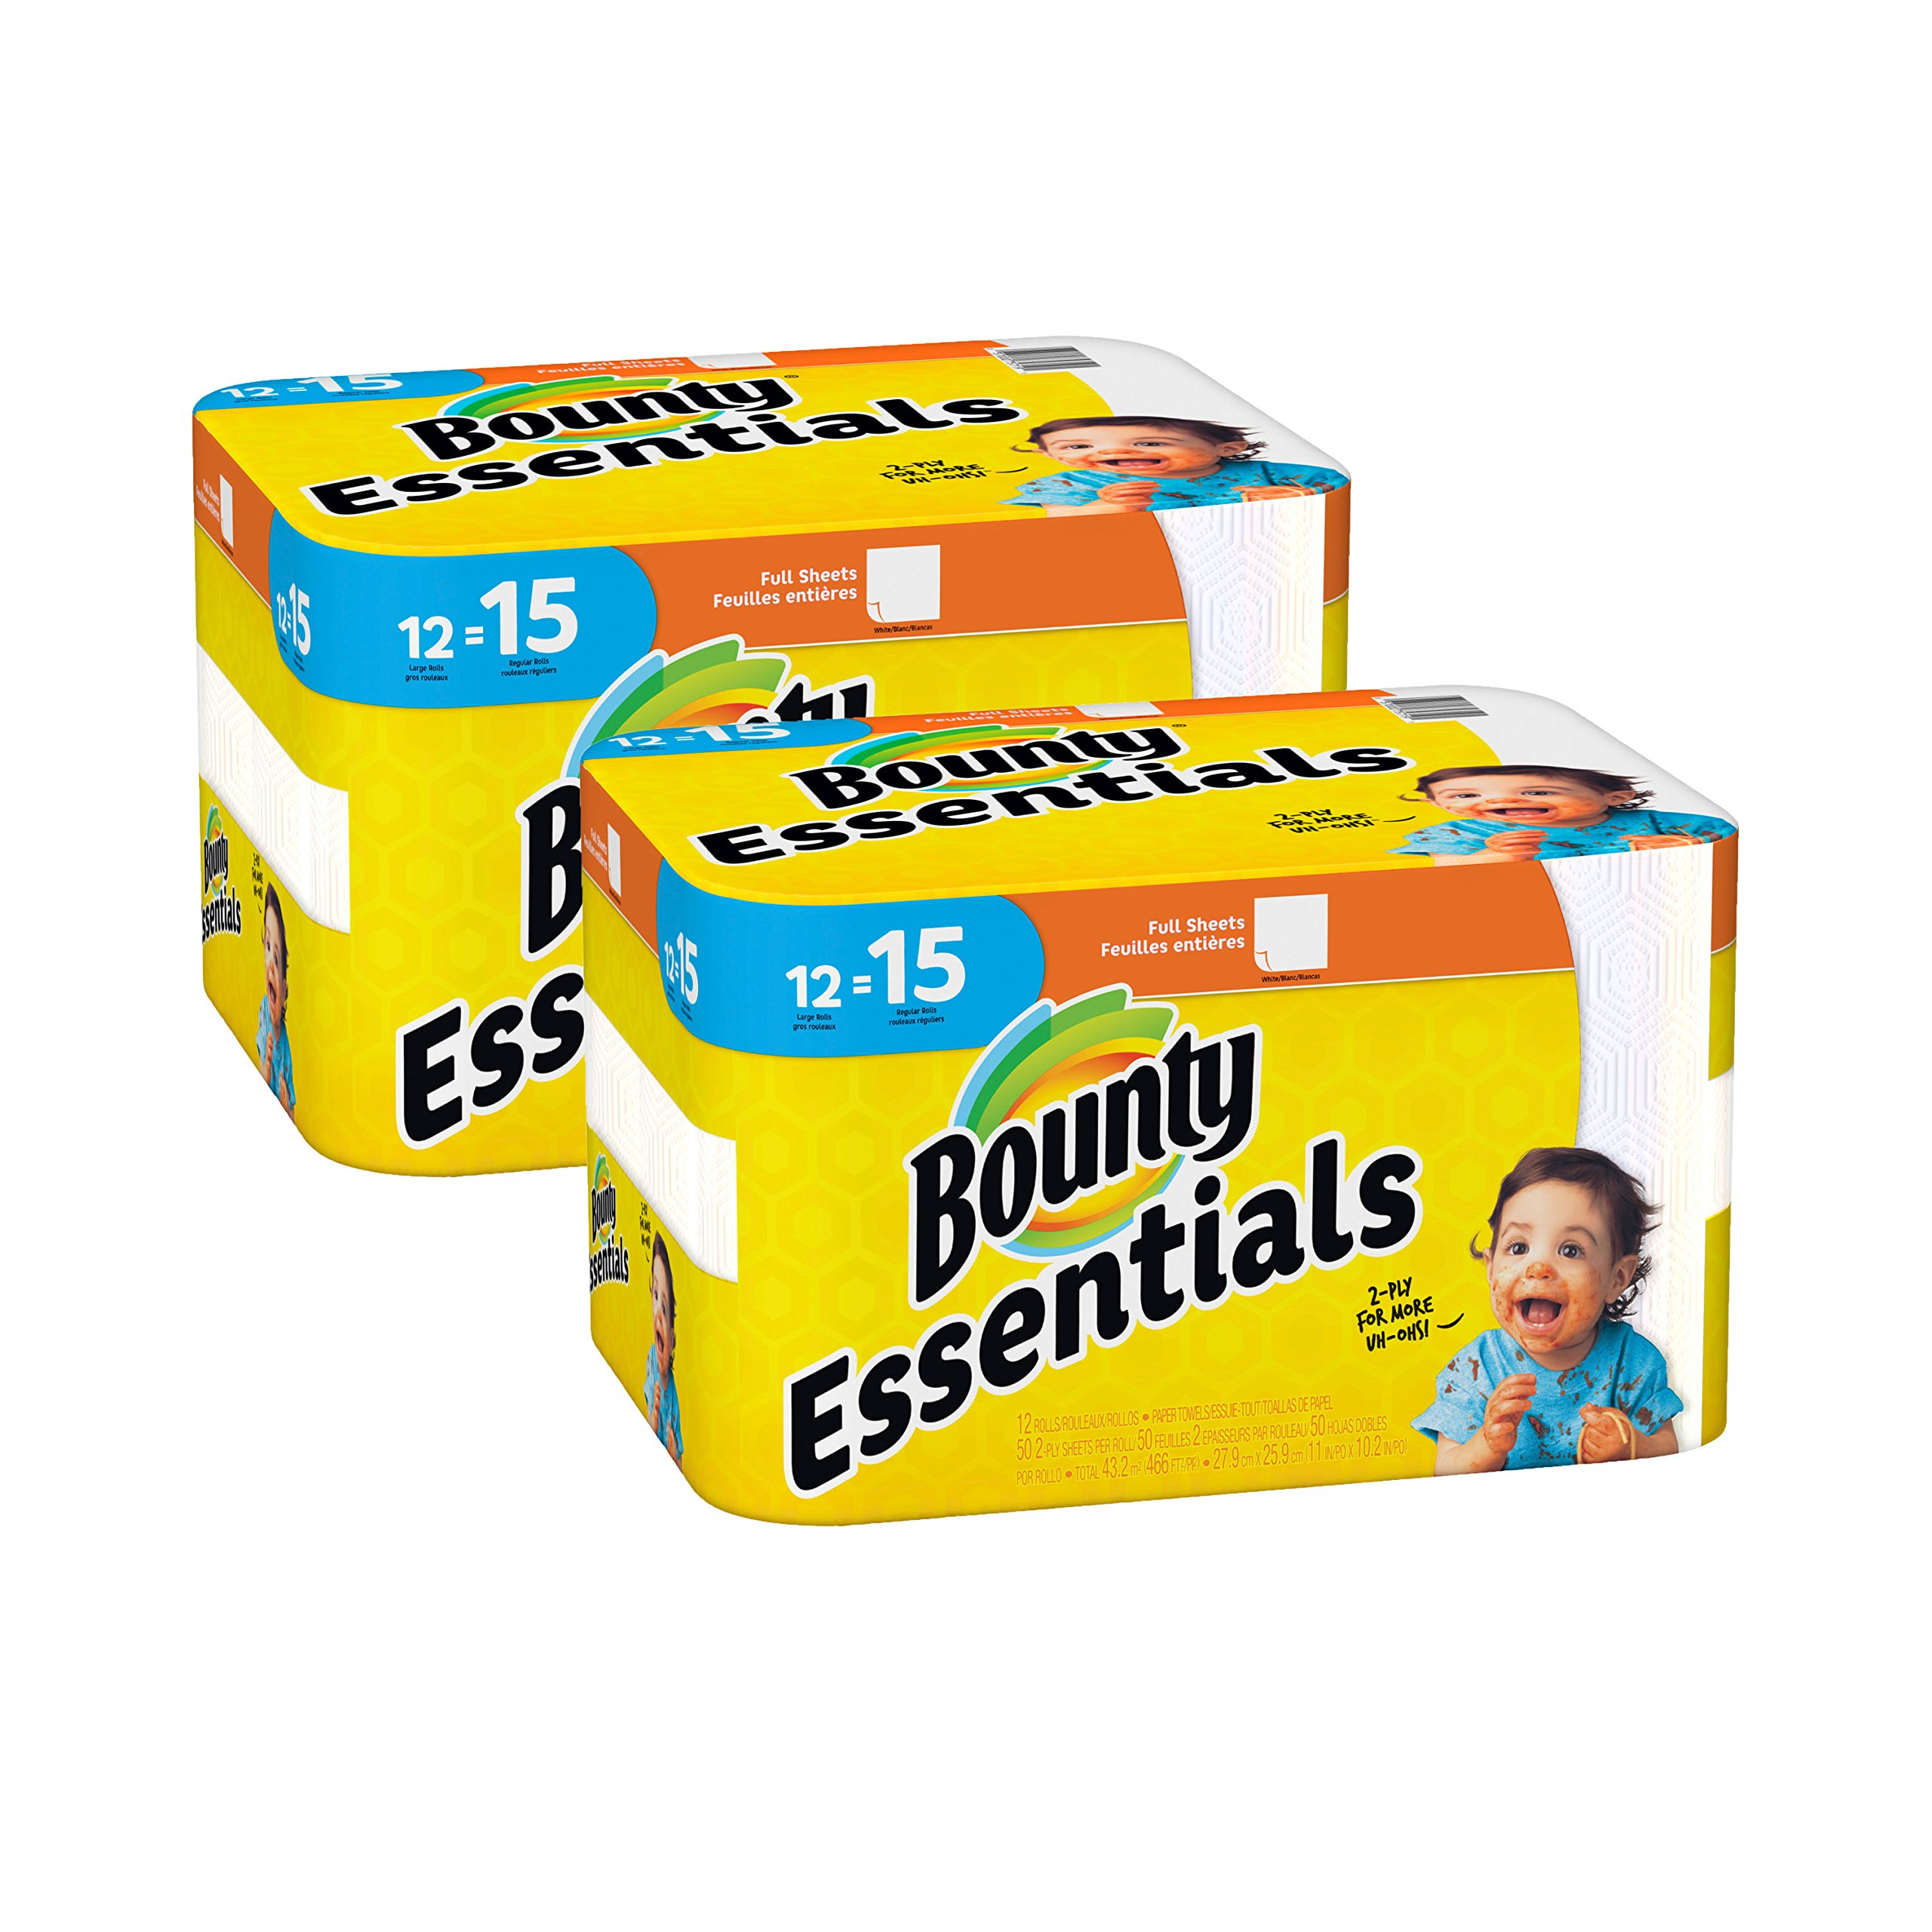 Bounty Essentials Full Sheet Paper Towels, 24 Large Rolls